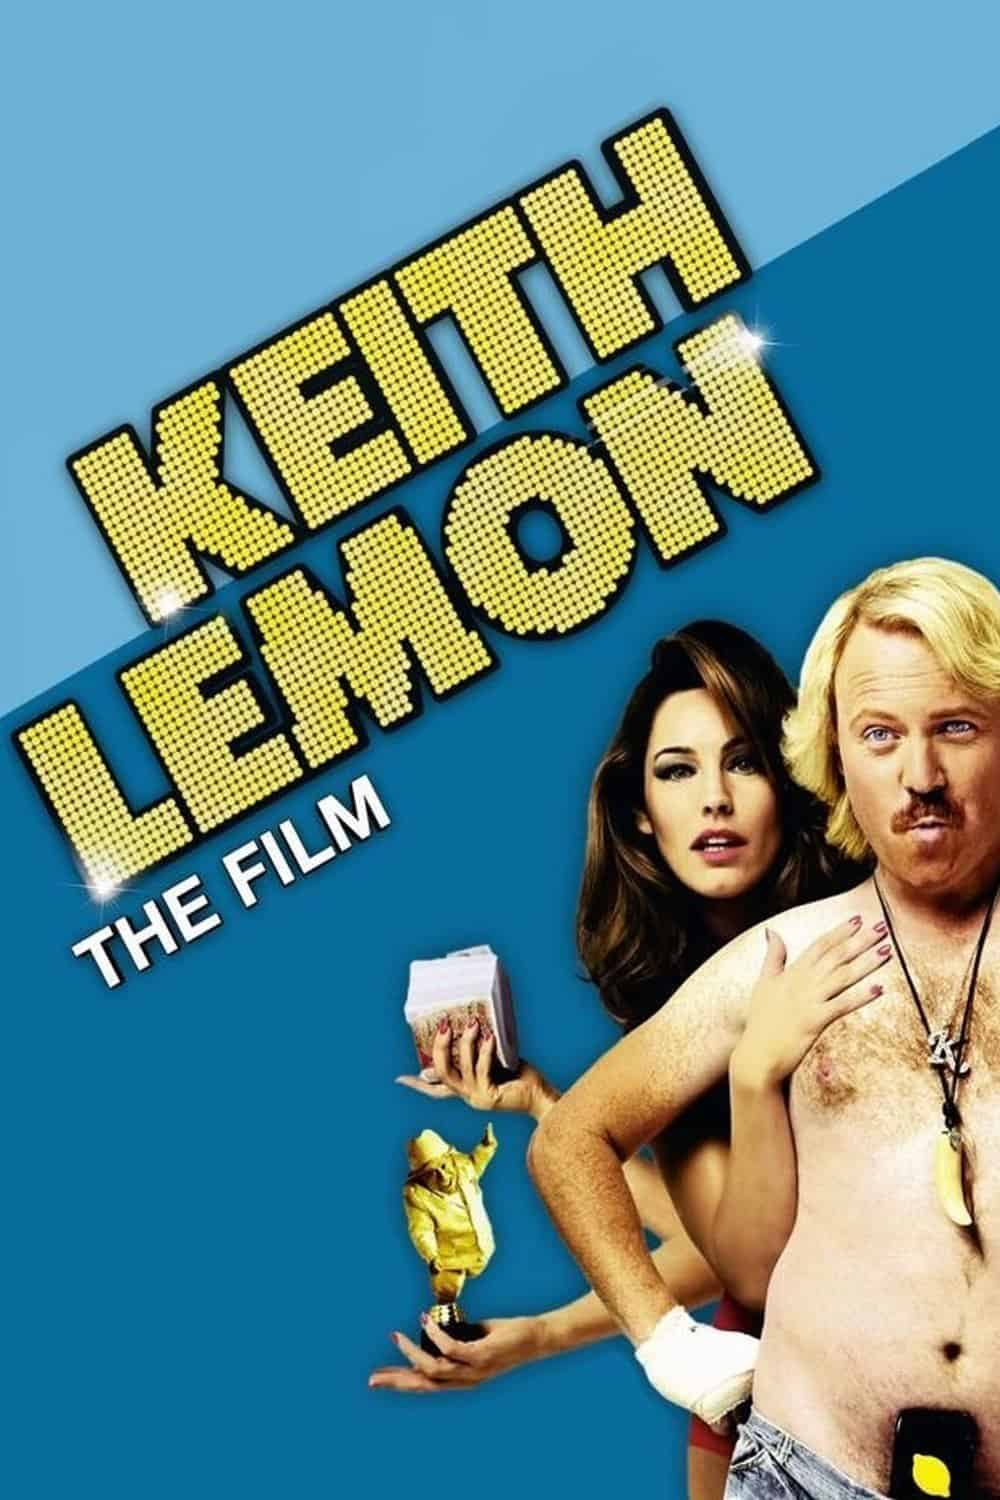 Keith Lemon: The Film, 2012